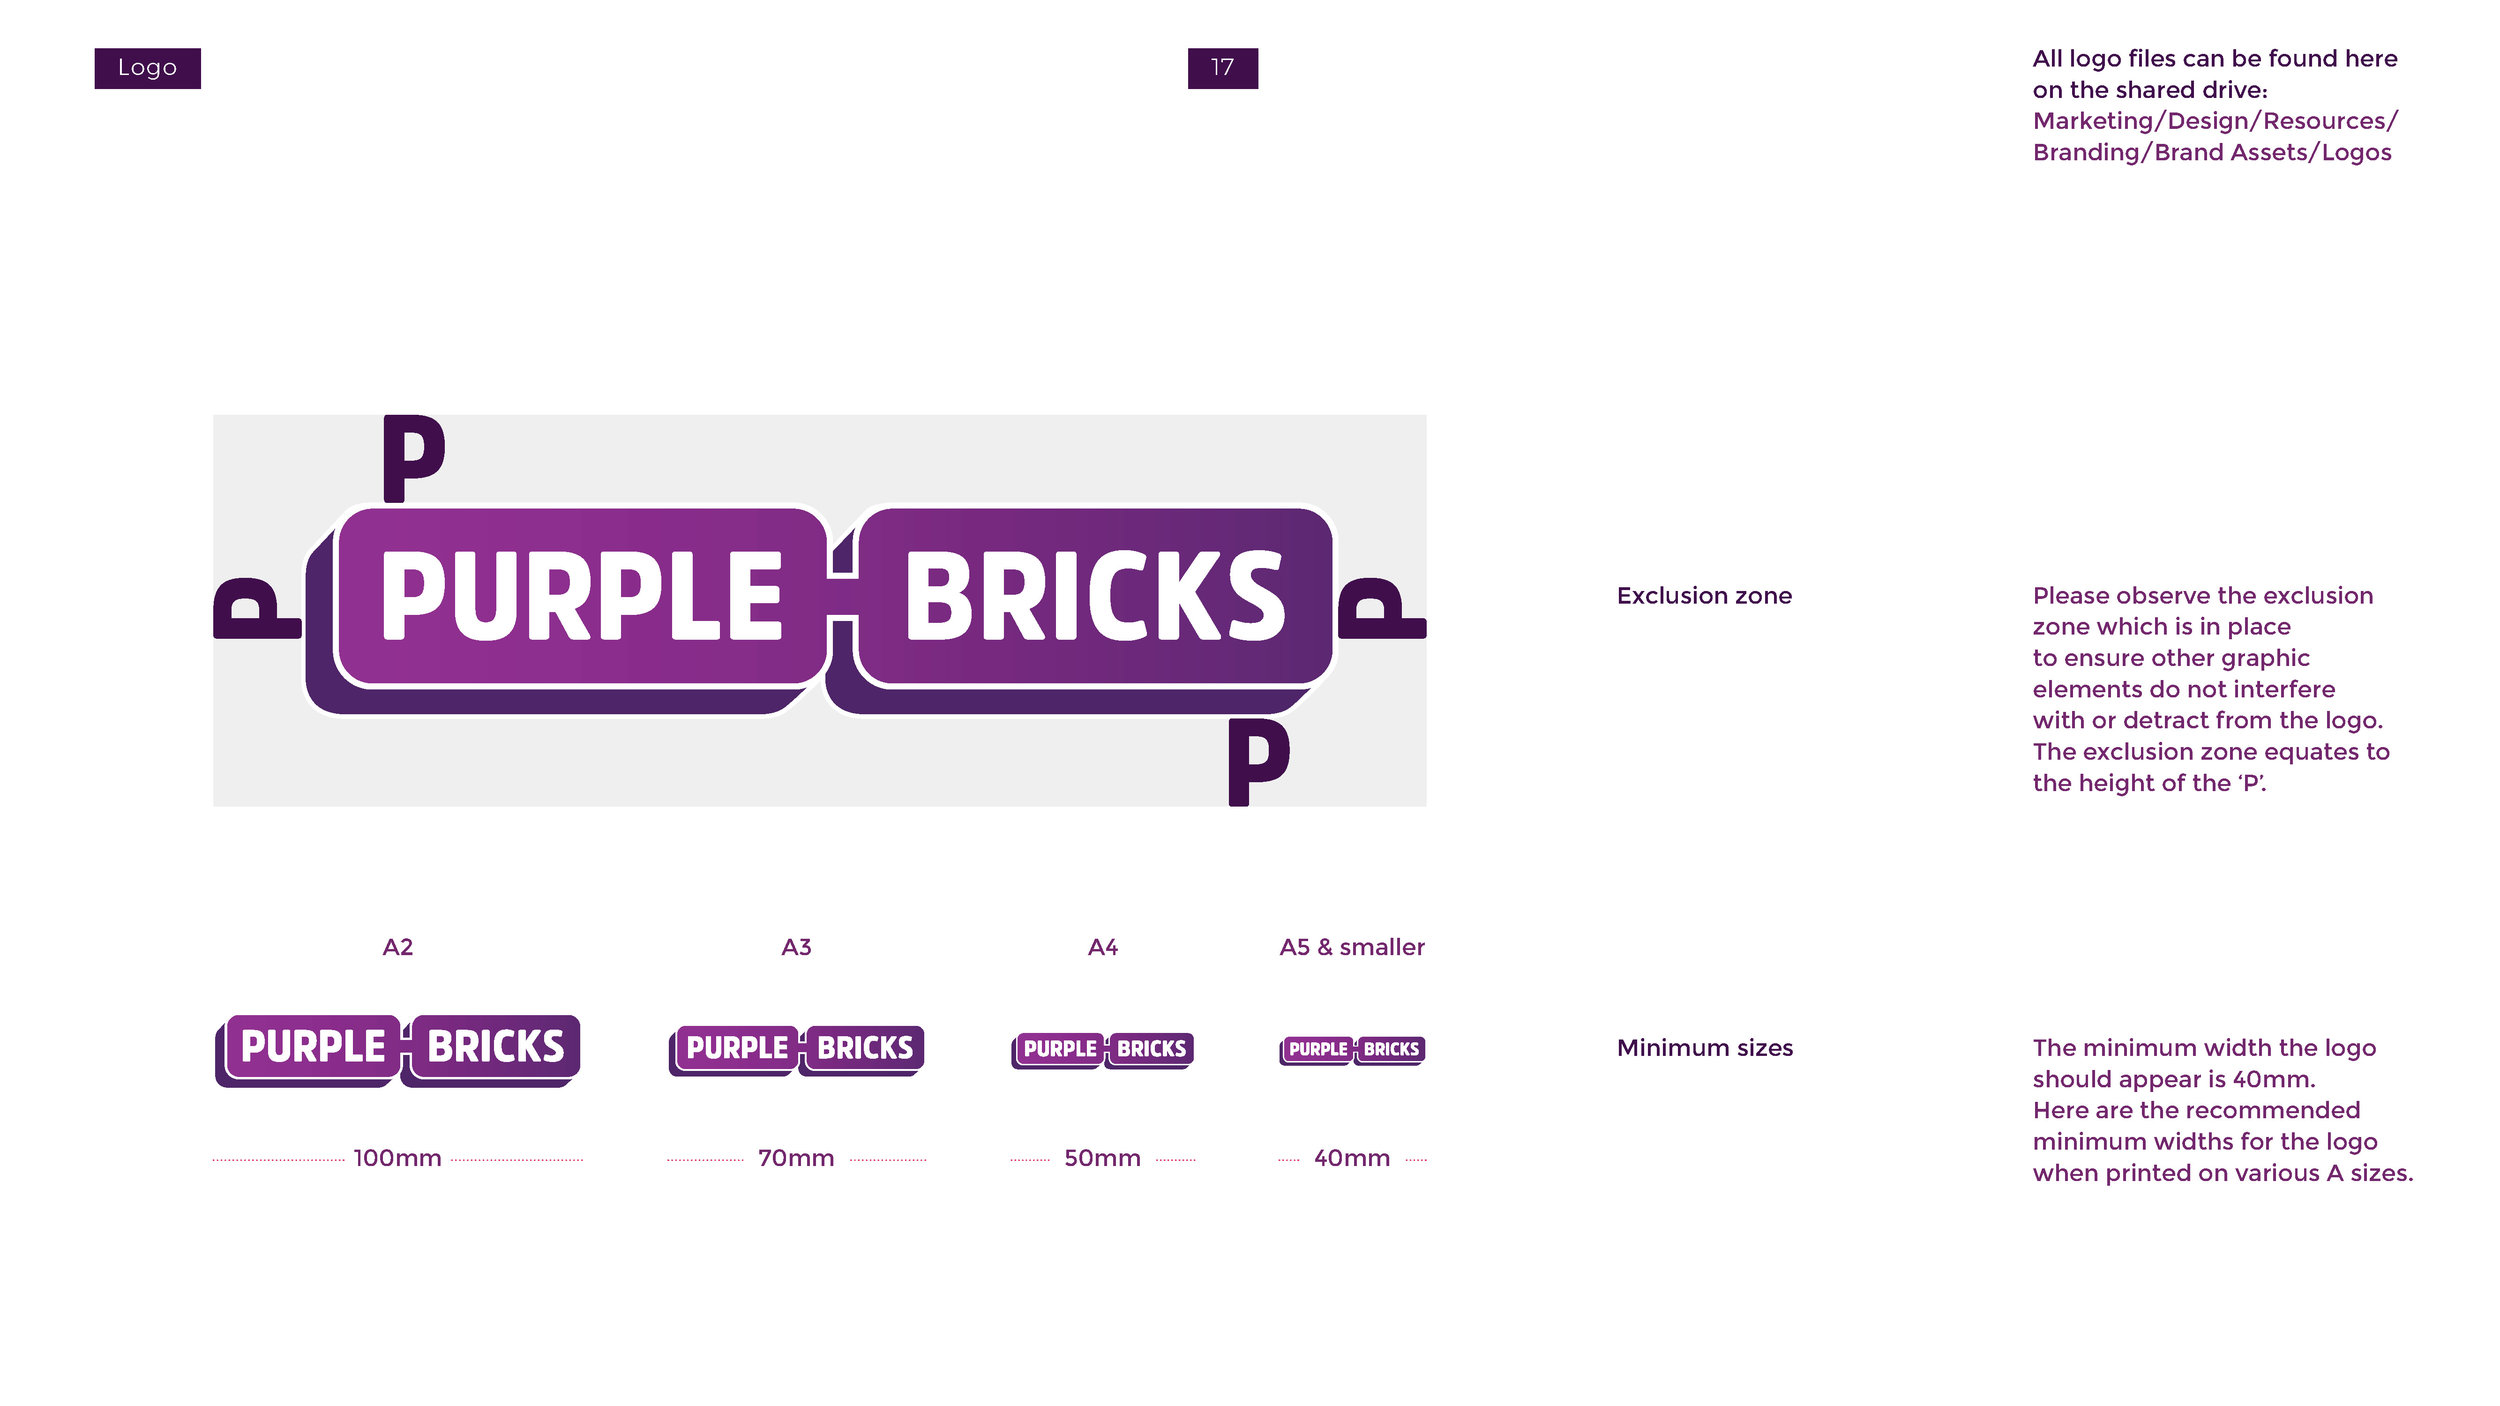 PURPLEBRICKS_GUIDELINES_2_Page_17.jpg